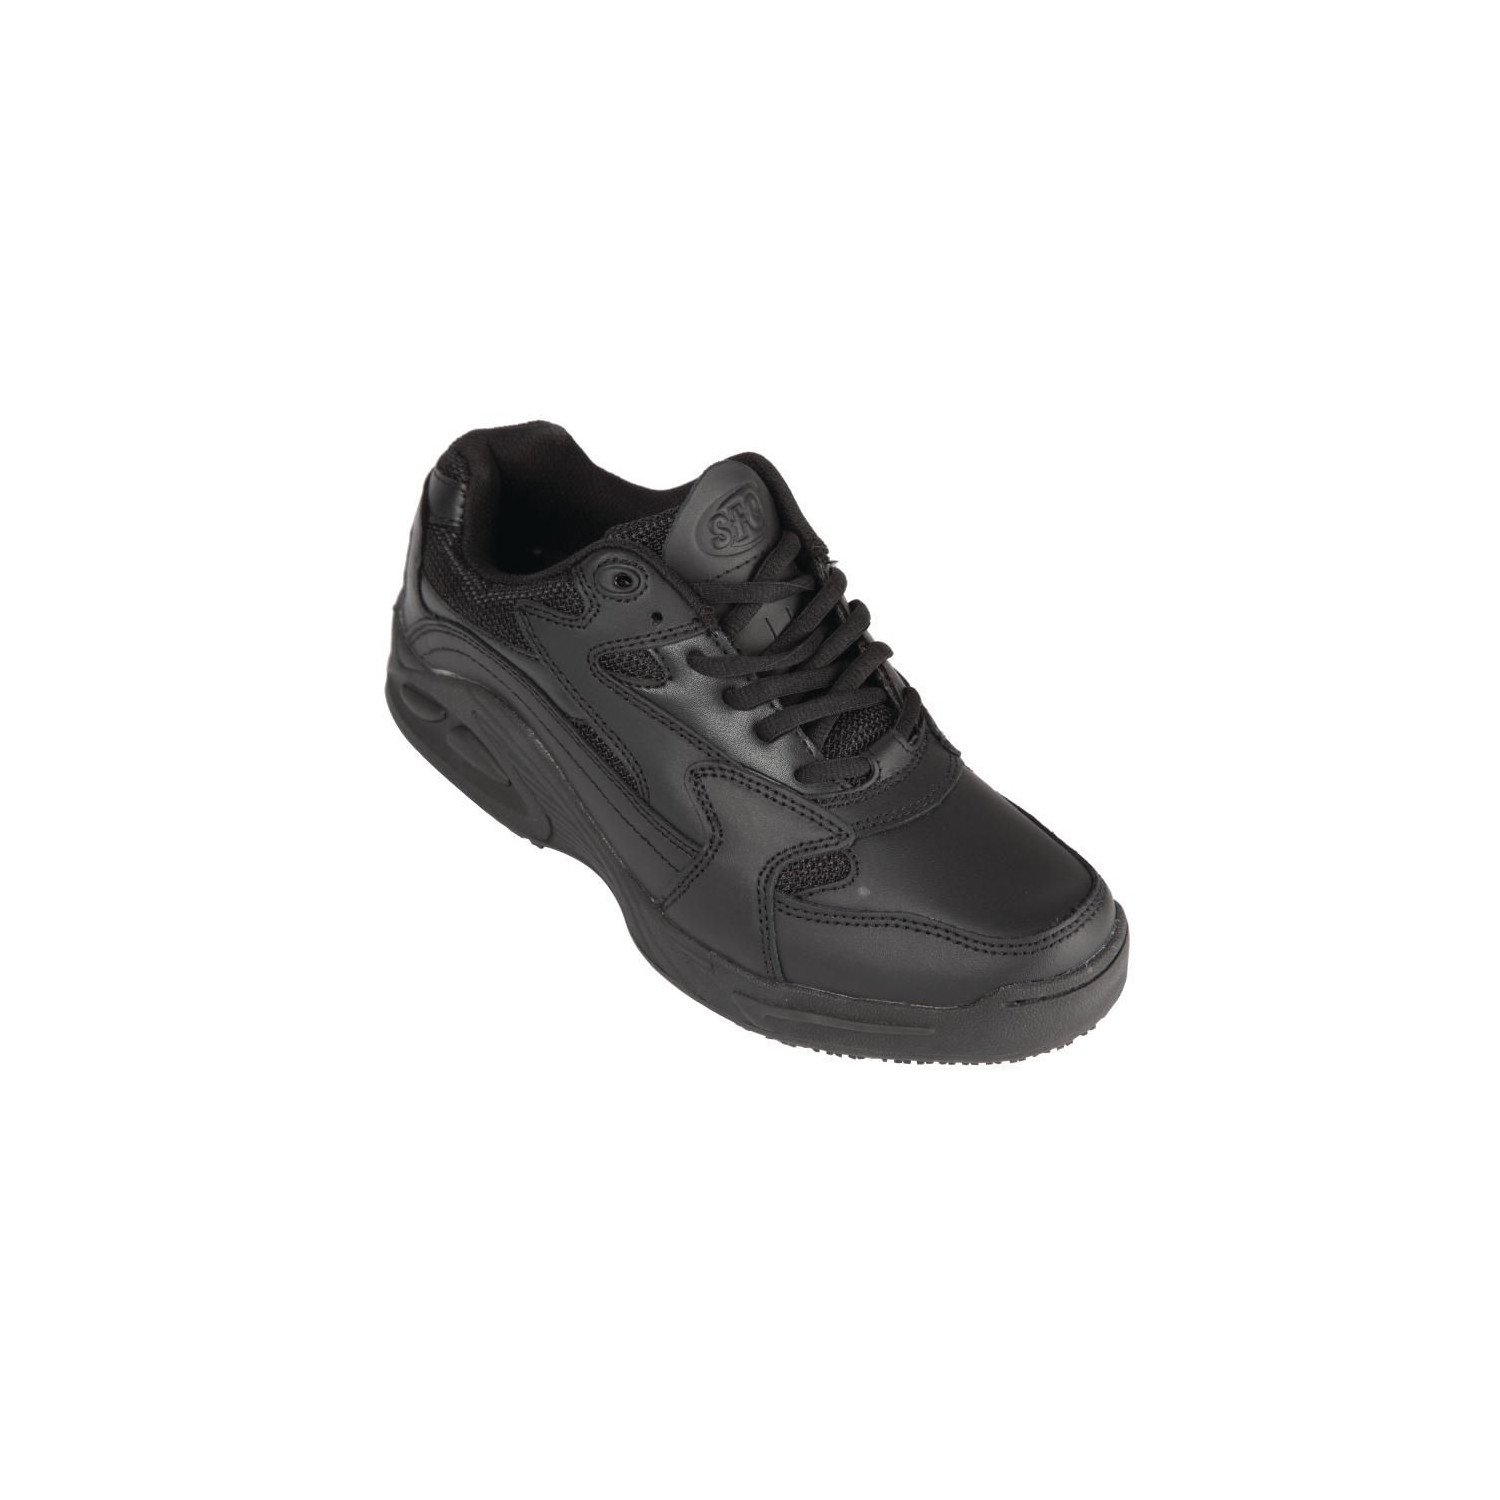 Shoes For Crews Mens Stay Grounded Leather Trainer - Size 40 SHOES FOR CREWS Nisbets Vêtements